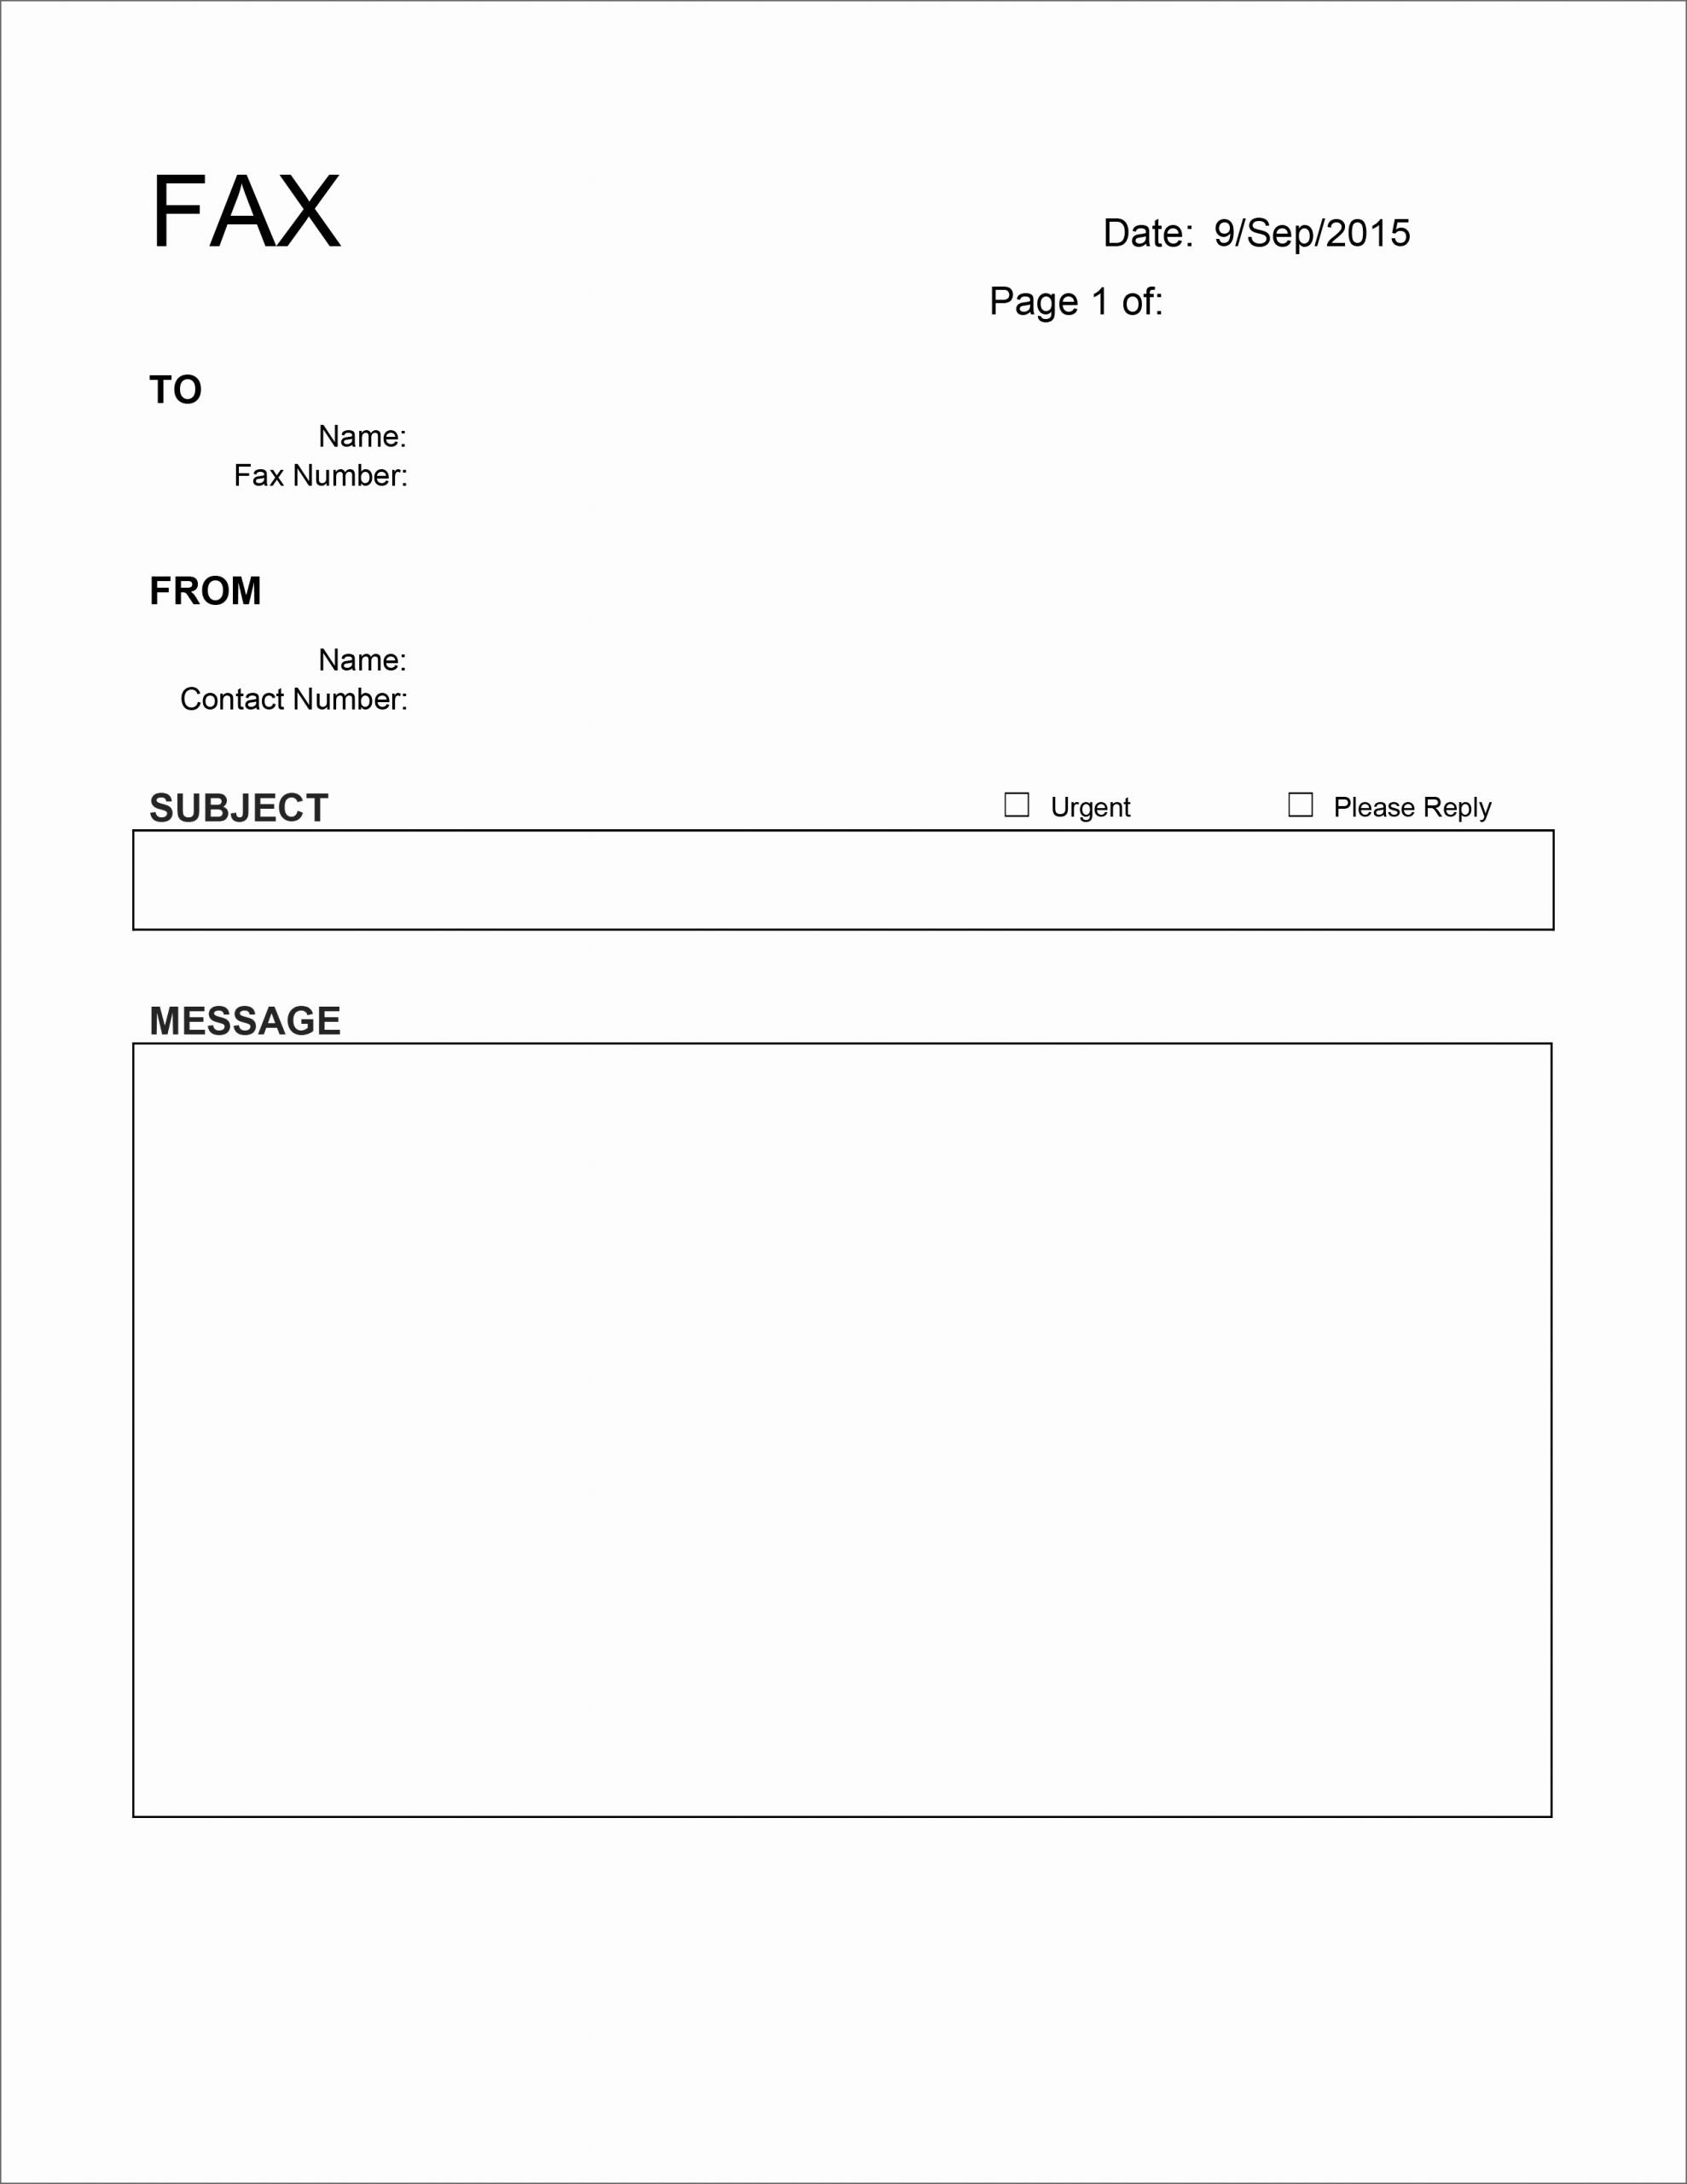 Note Card Template Google Docs Best Of 20 Free Fax Cover Templates Sheets In Microsoft Fice Docx